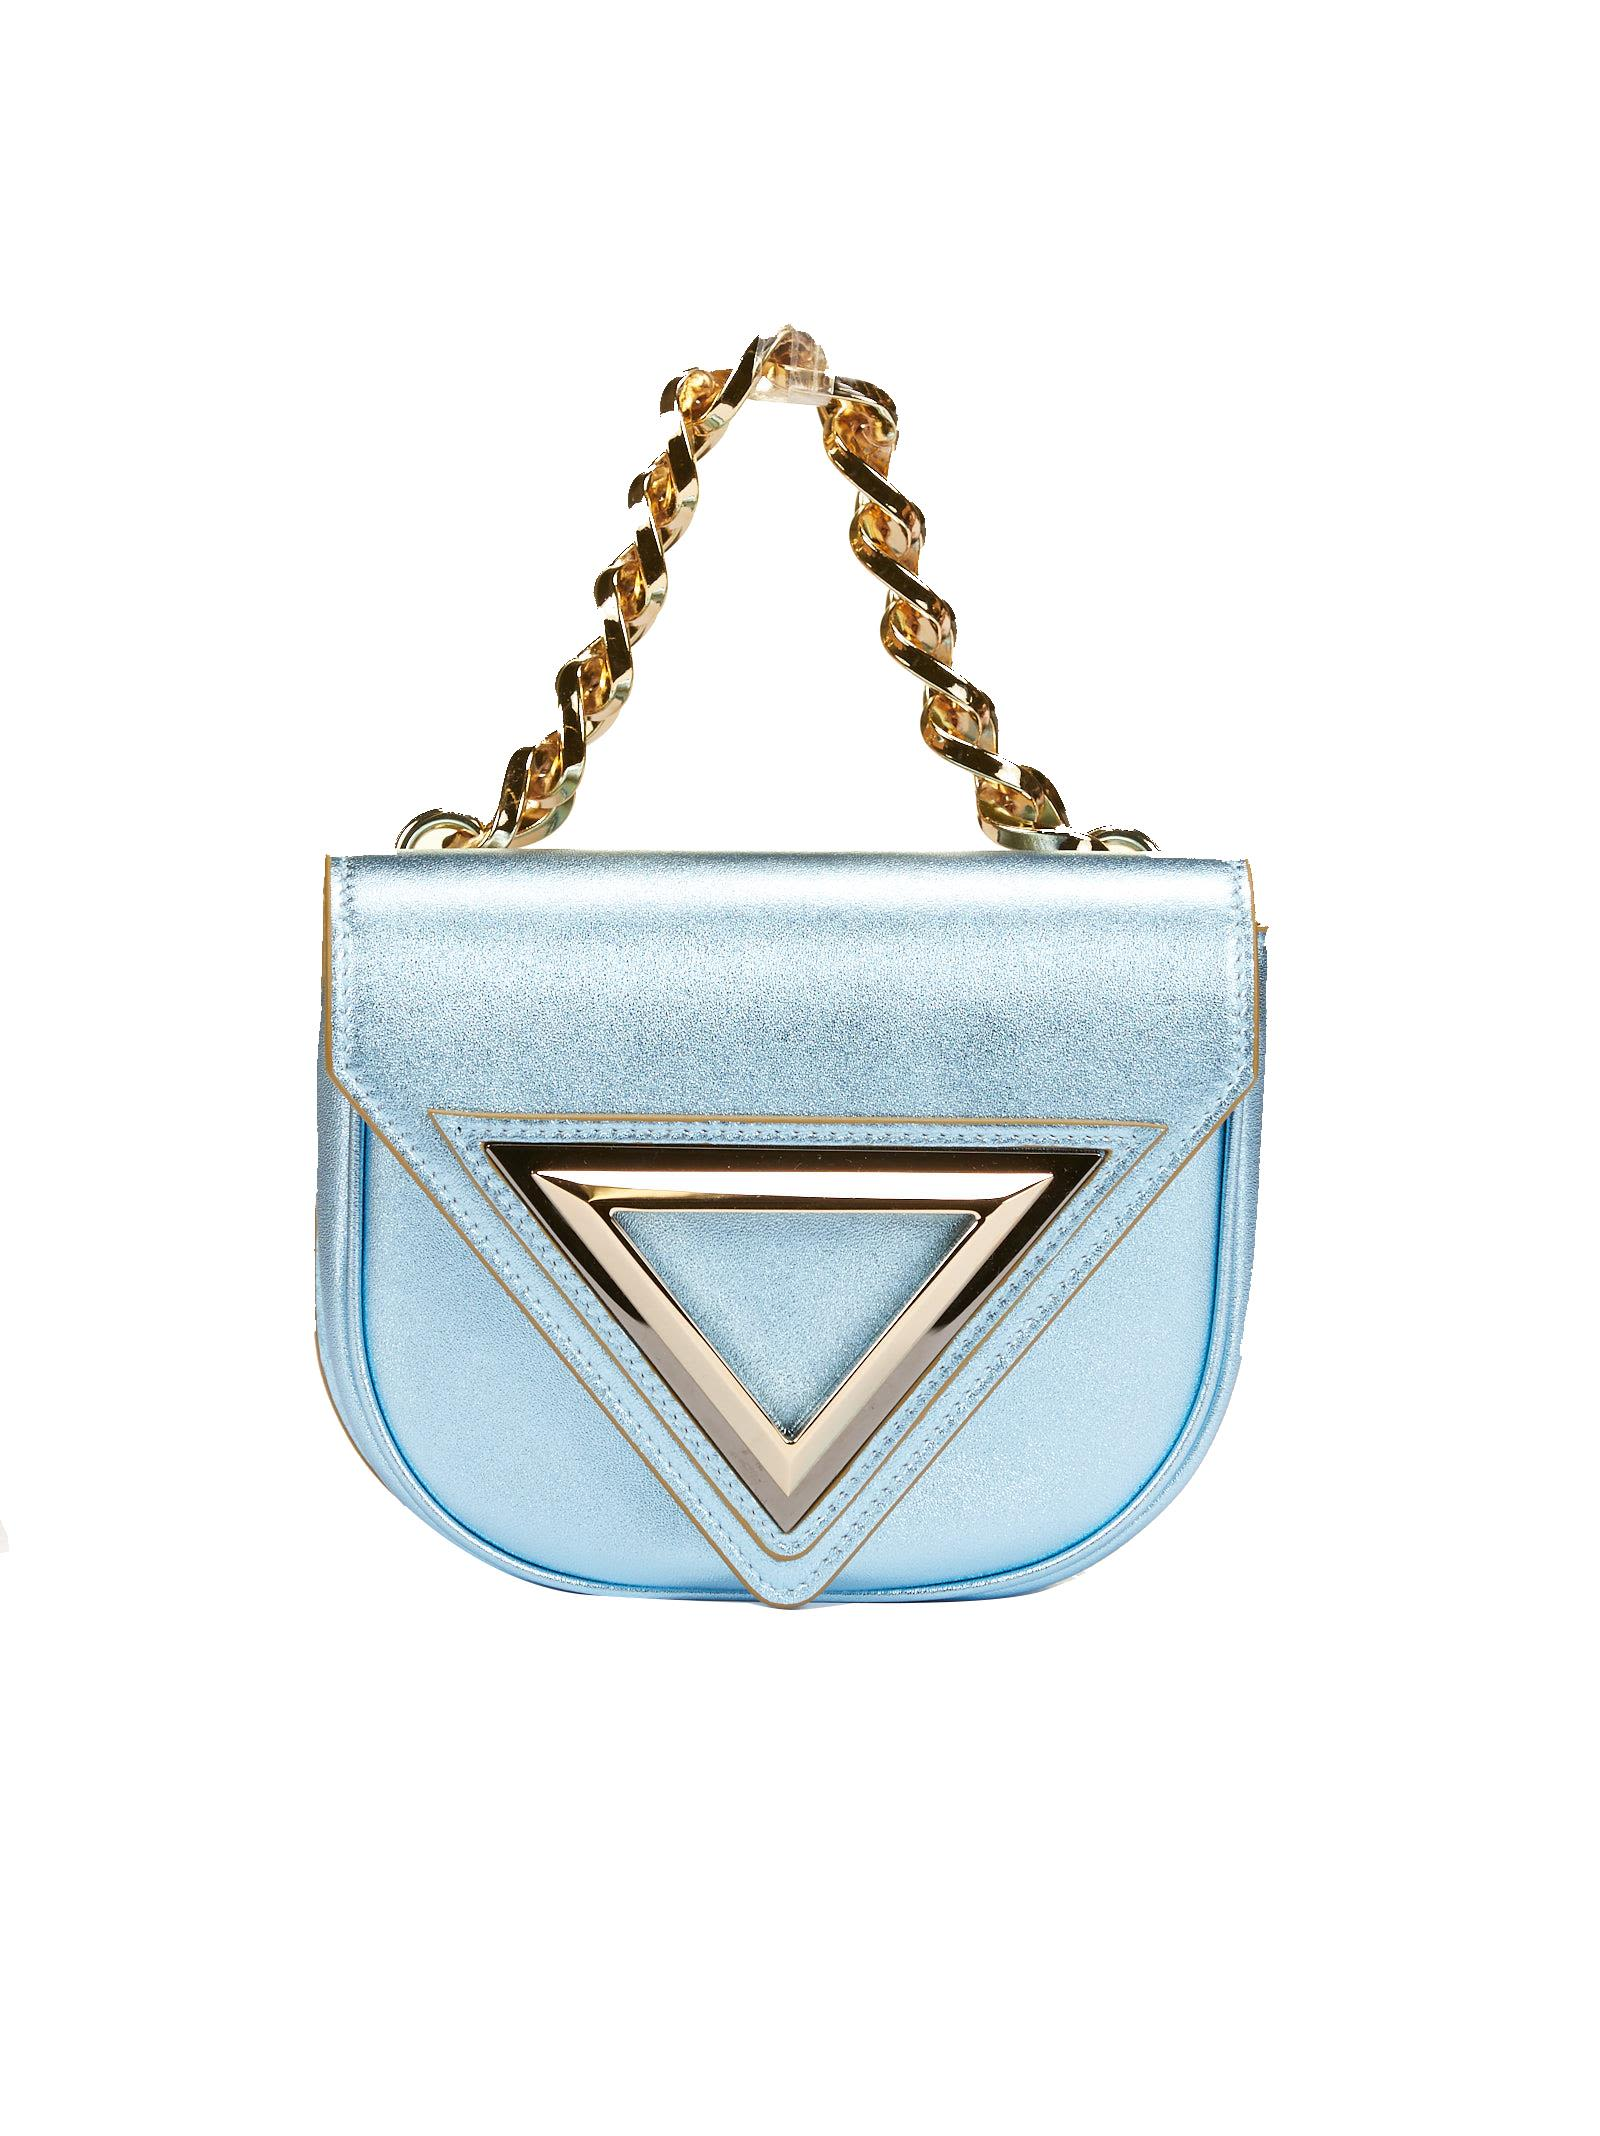 Candy shoulder bag - White Giaquinto 0XJCy